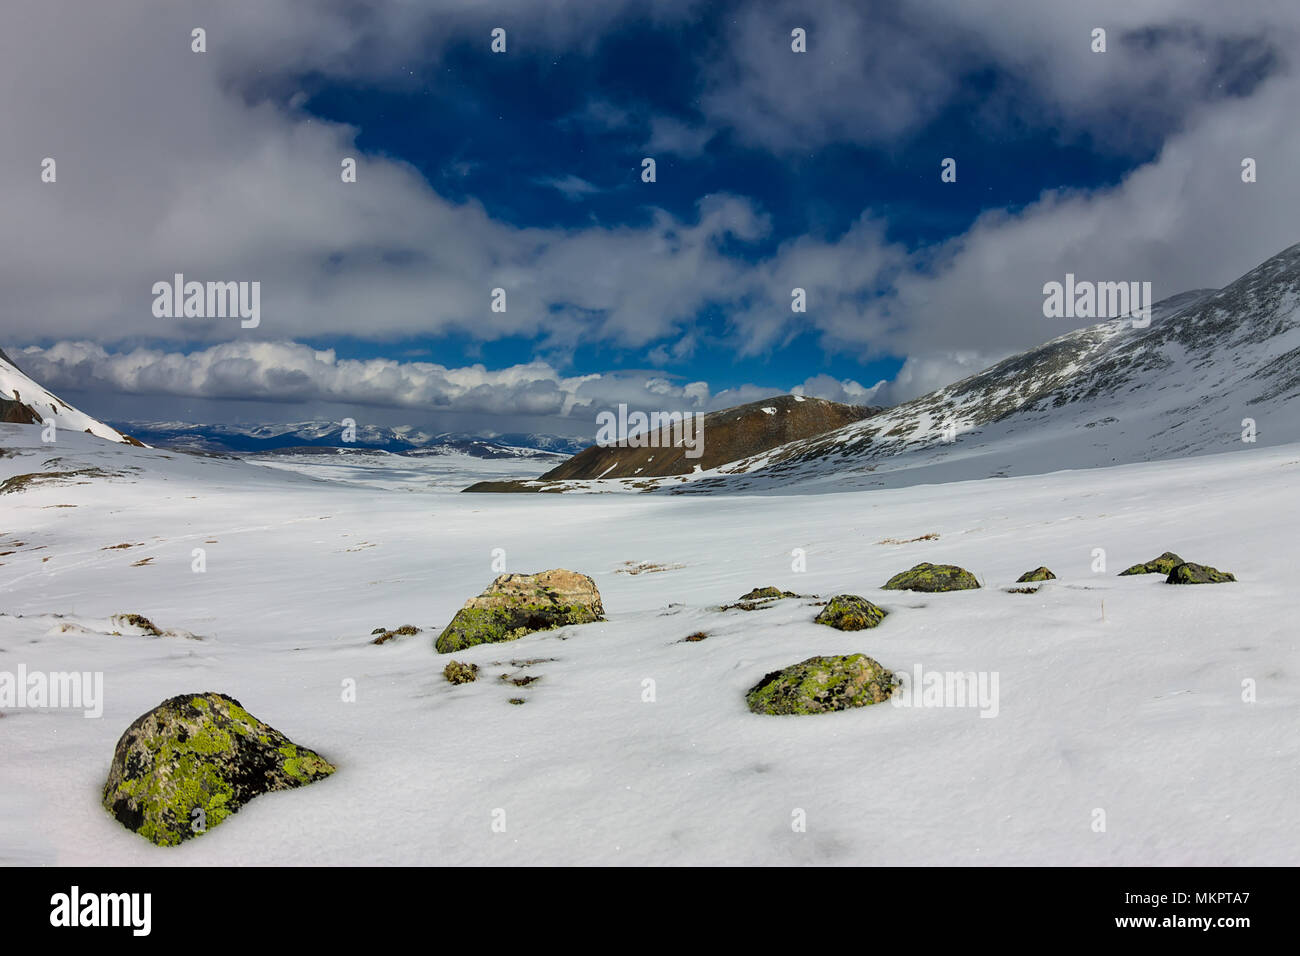 Snowy mountains aero photo drone, clouds approaching peaks and valley. - Stock Image